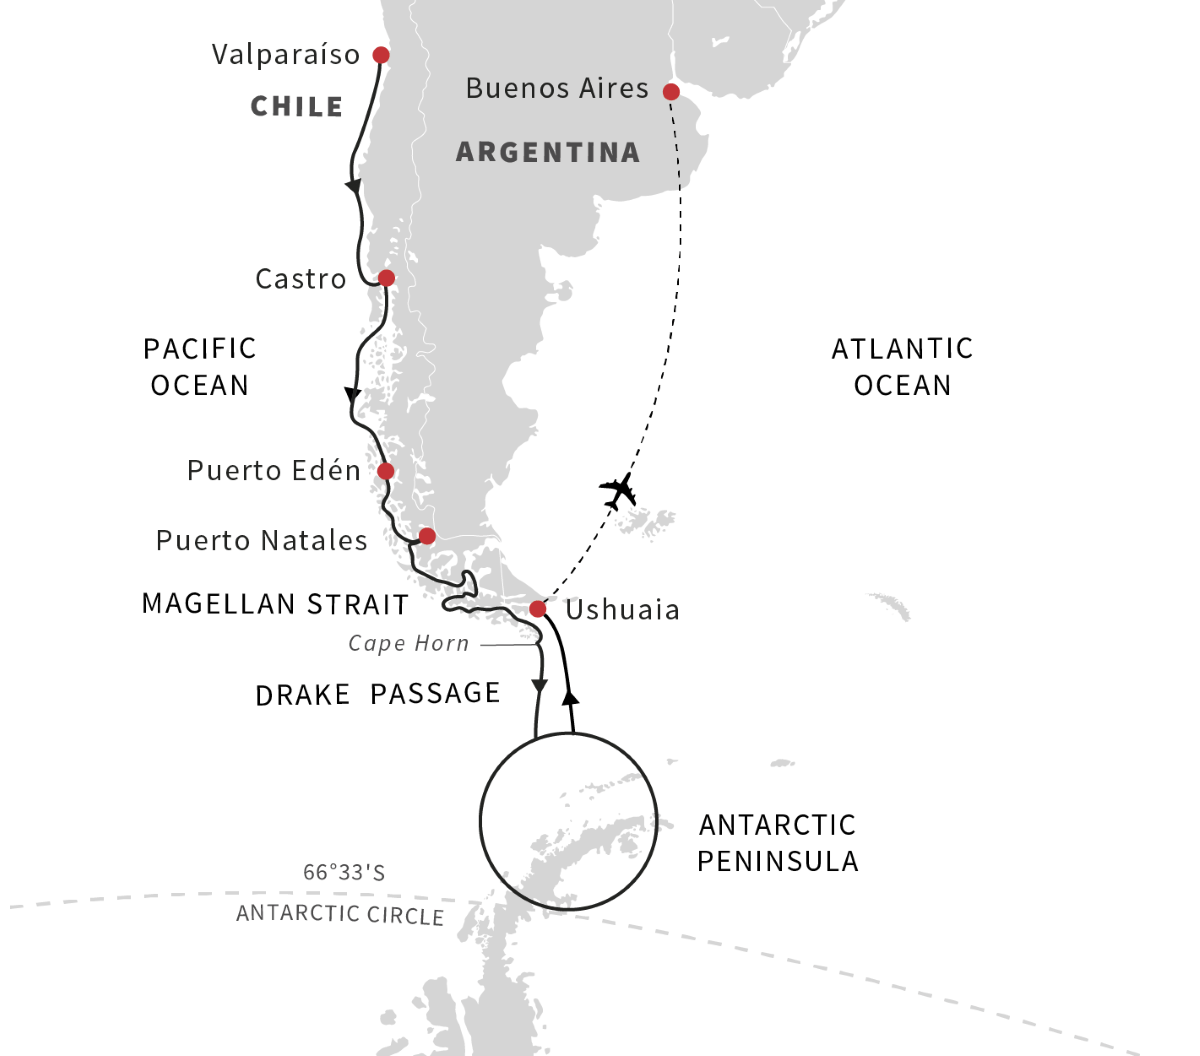 Antarctica, Patagonia, Chilean Fjords - Exploration of the Southern Highlights (Southbound) 2021